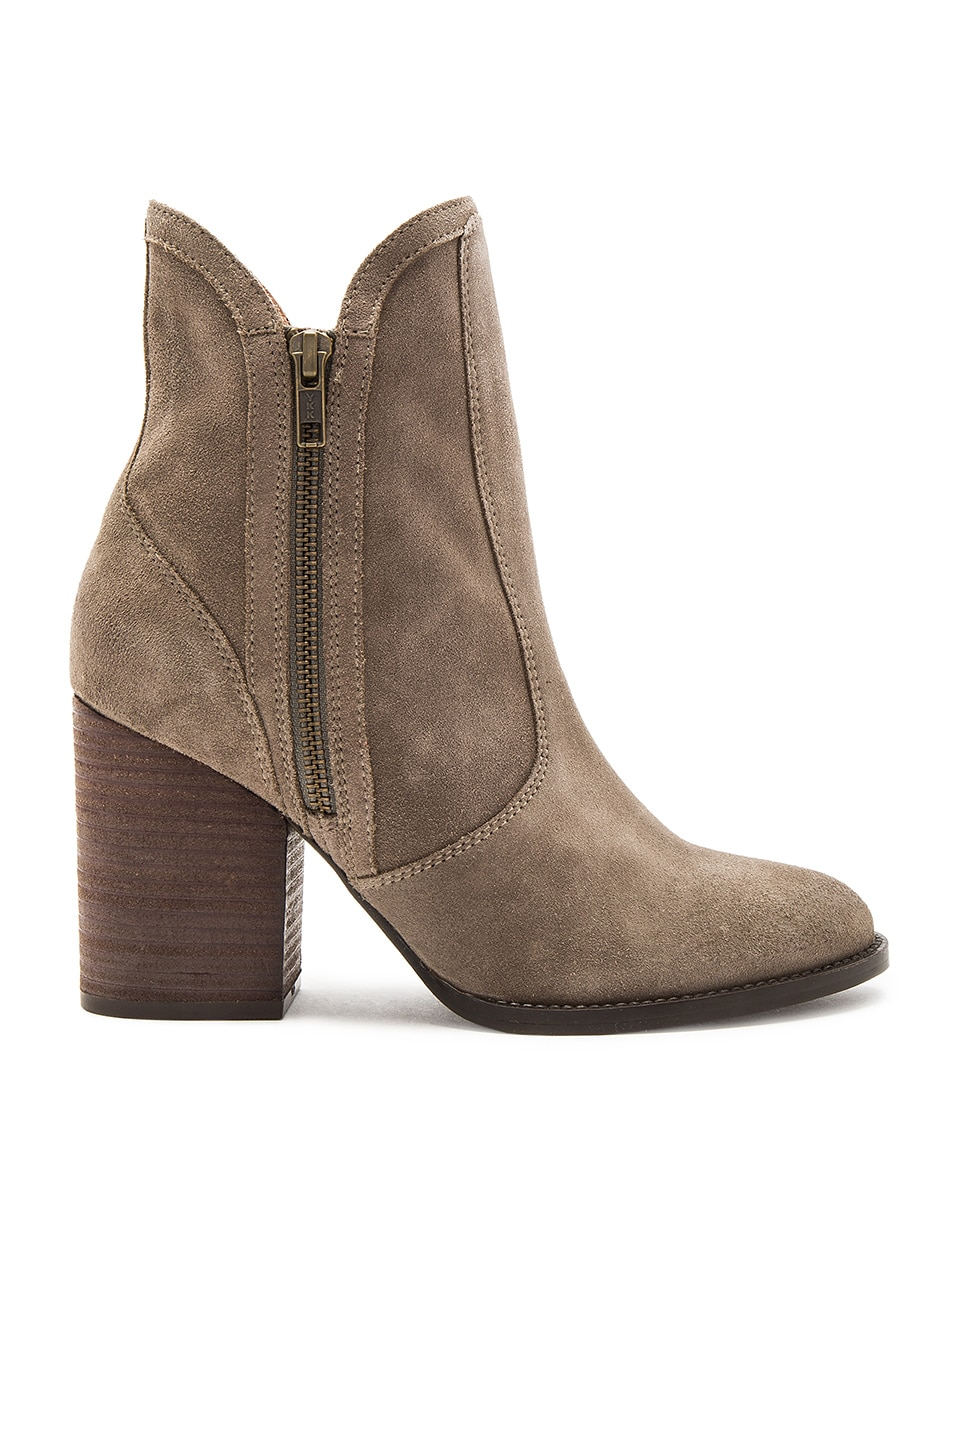 Seychelles Lori Penny Bootie Suede in Taupe